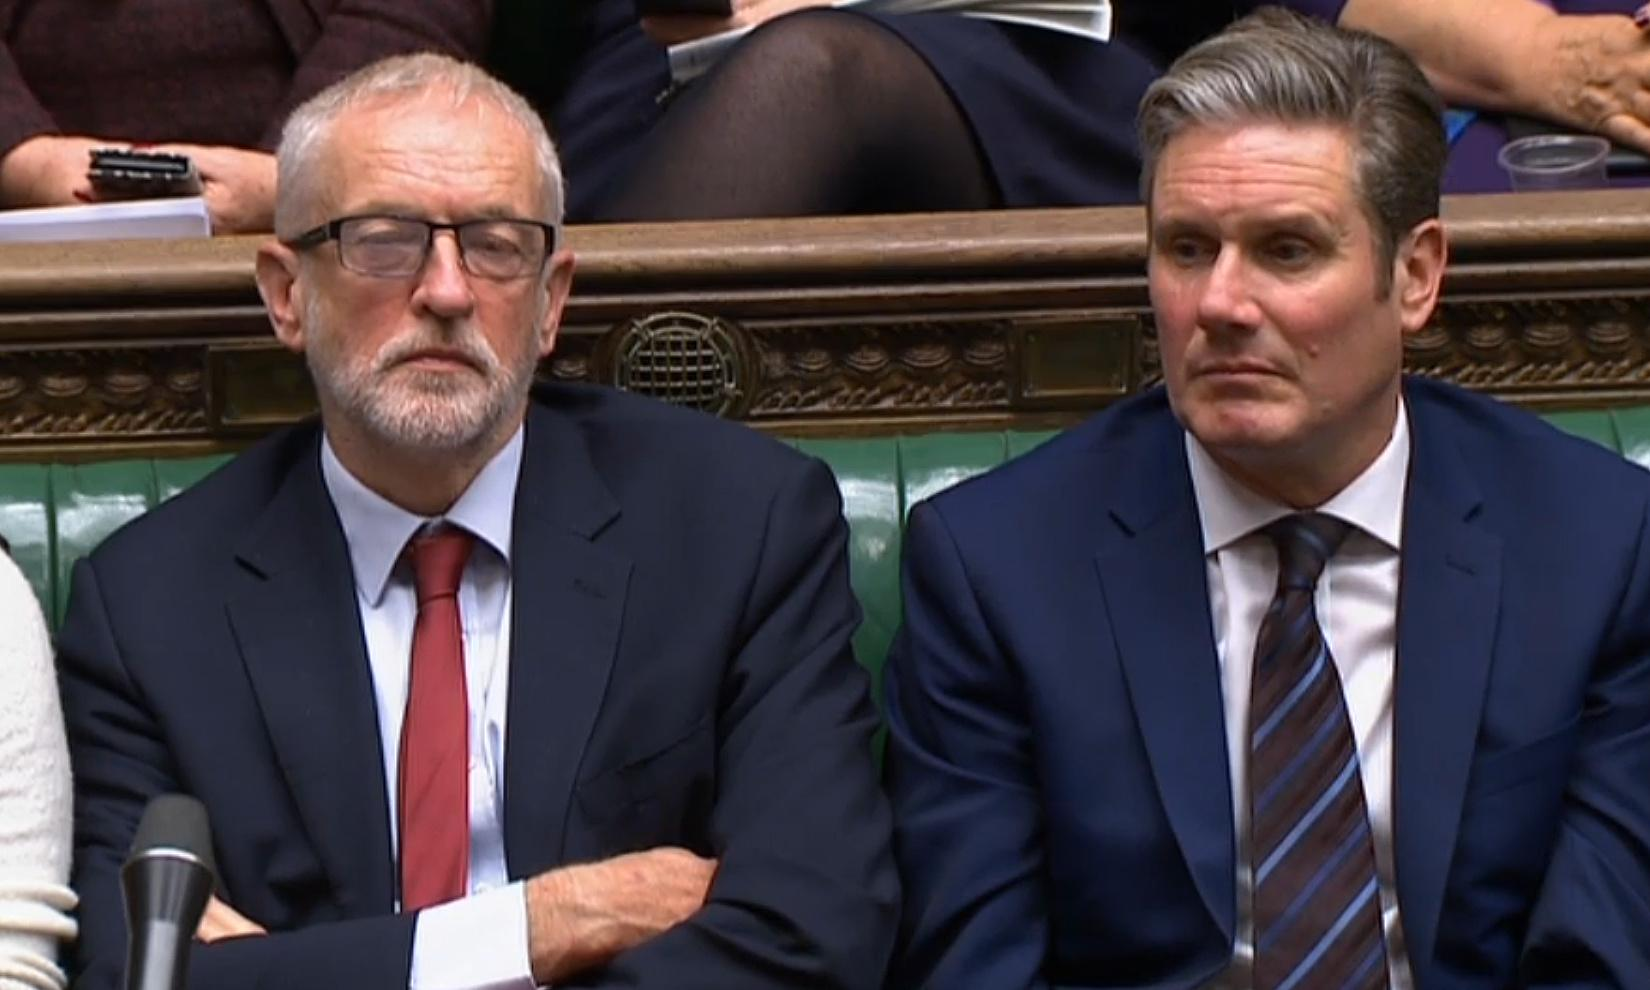 Starmer clashes with shadow cabinet over second referendum